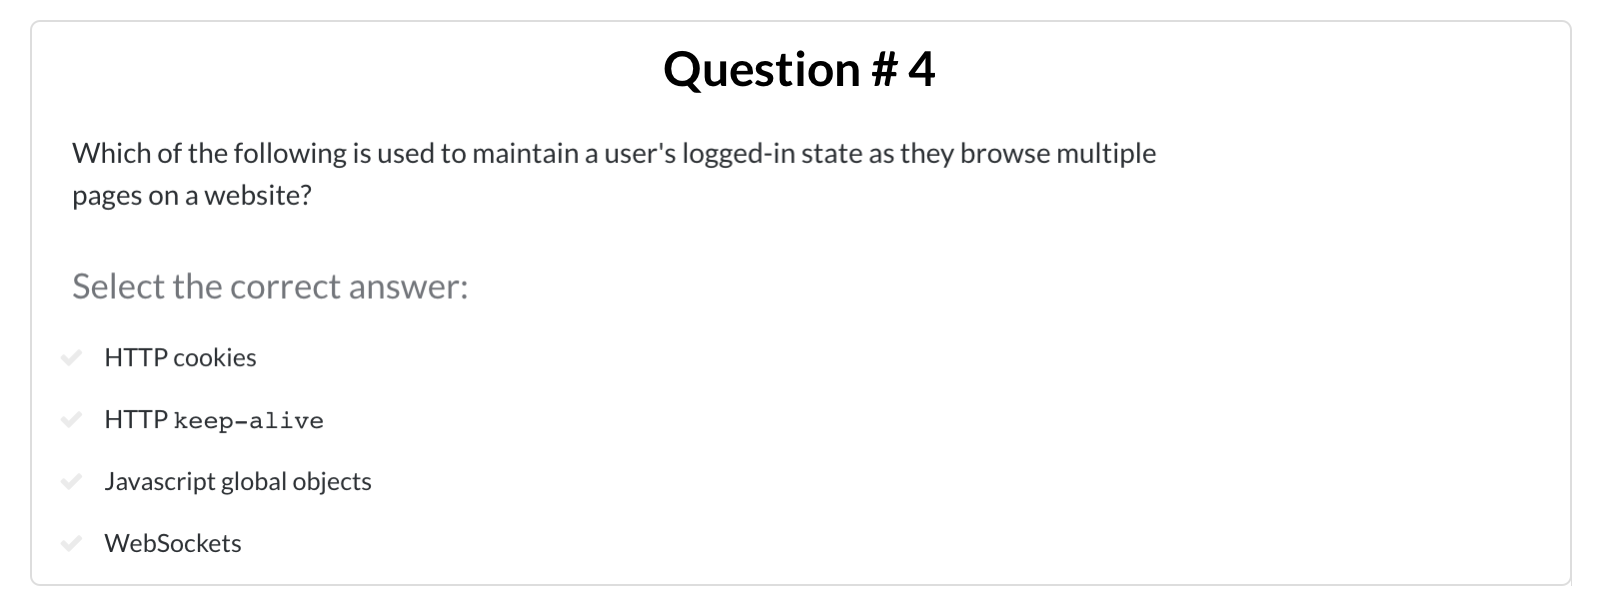 Question 4 of 5: Which of the following is used to maintain a user's logged-in state as they browse multiple pages on a website?